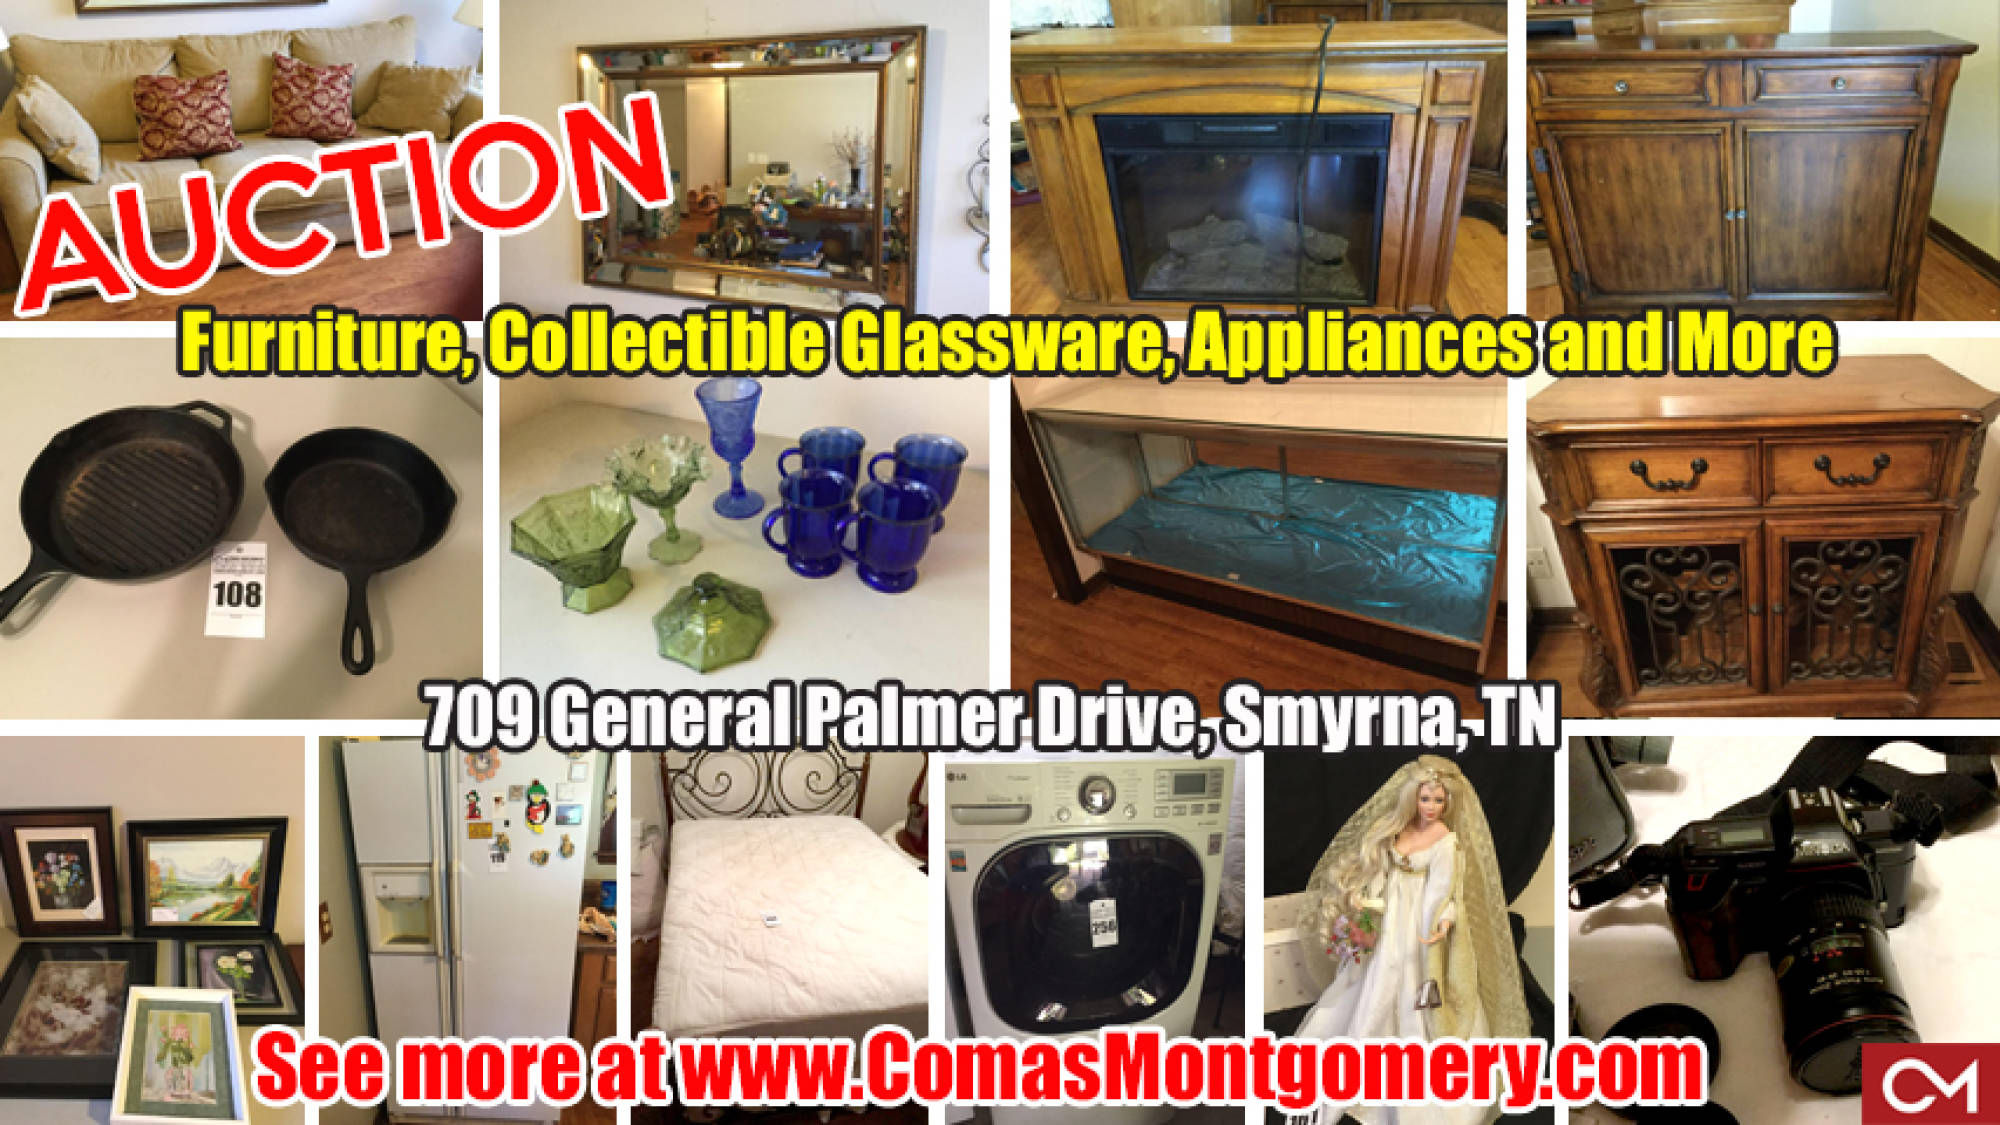 Auction, Estate, Furniture, Appliances, Glassware, Cast Iron, Dolls, Collectibles, Smyrna, Tennessee, Comas, Montgomery